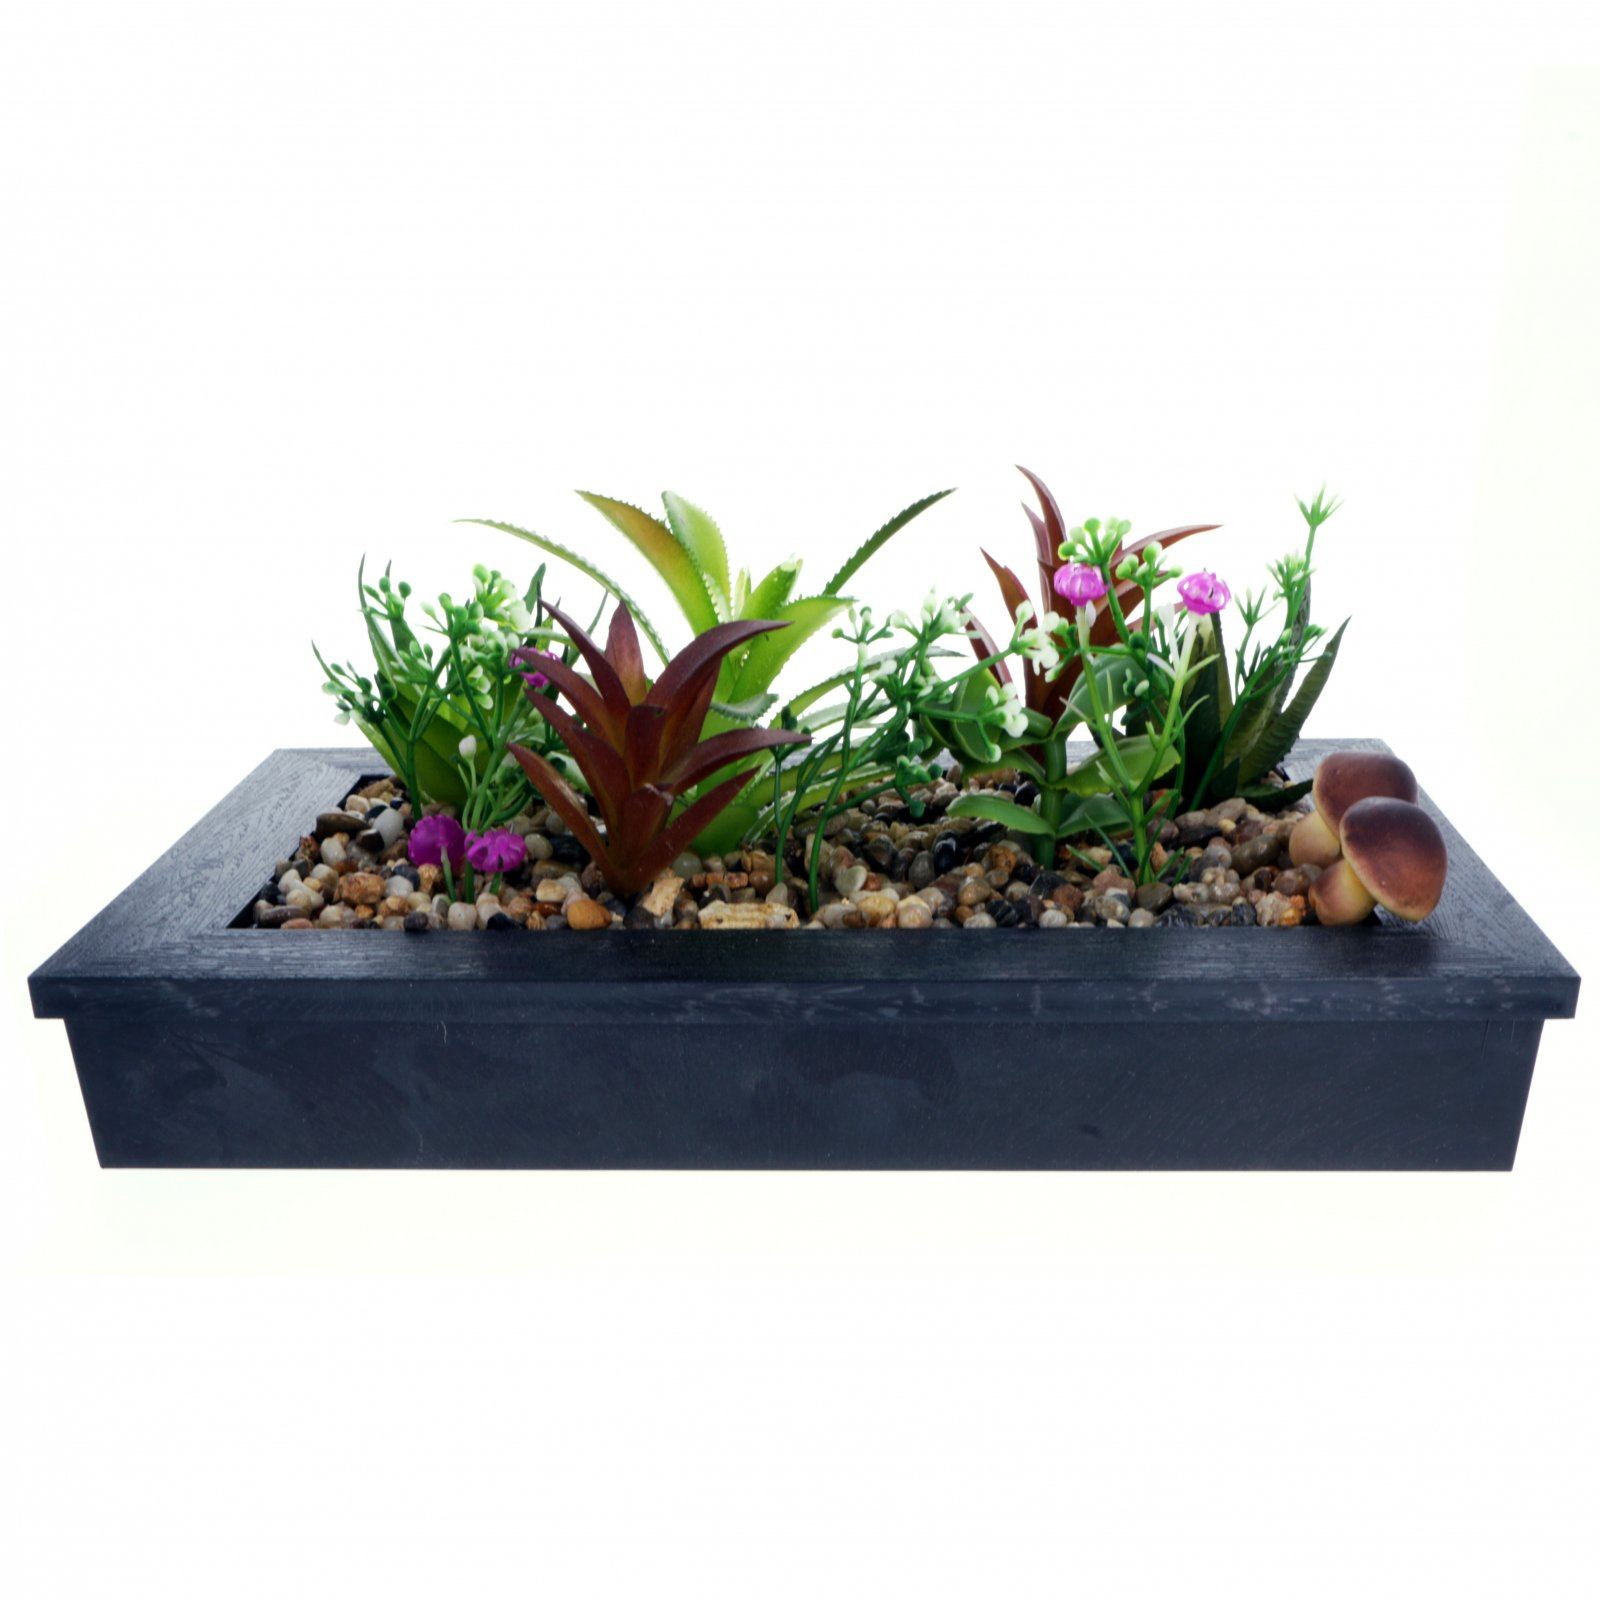 2pk Artificial Plant Garden In Planter - Black